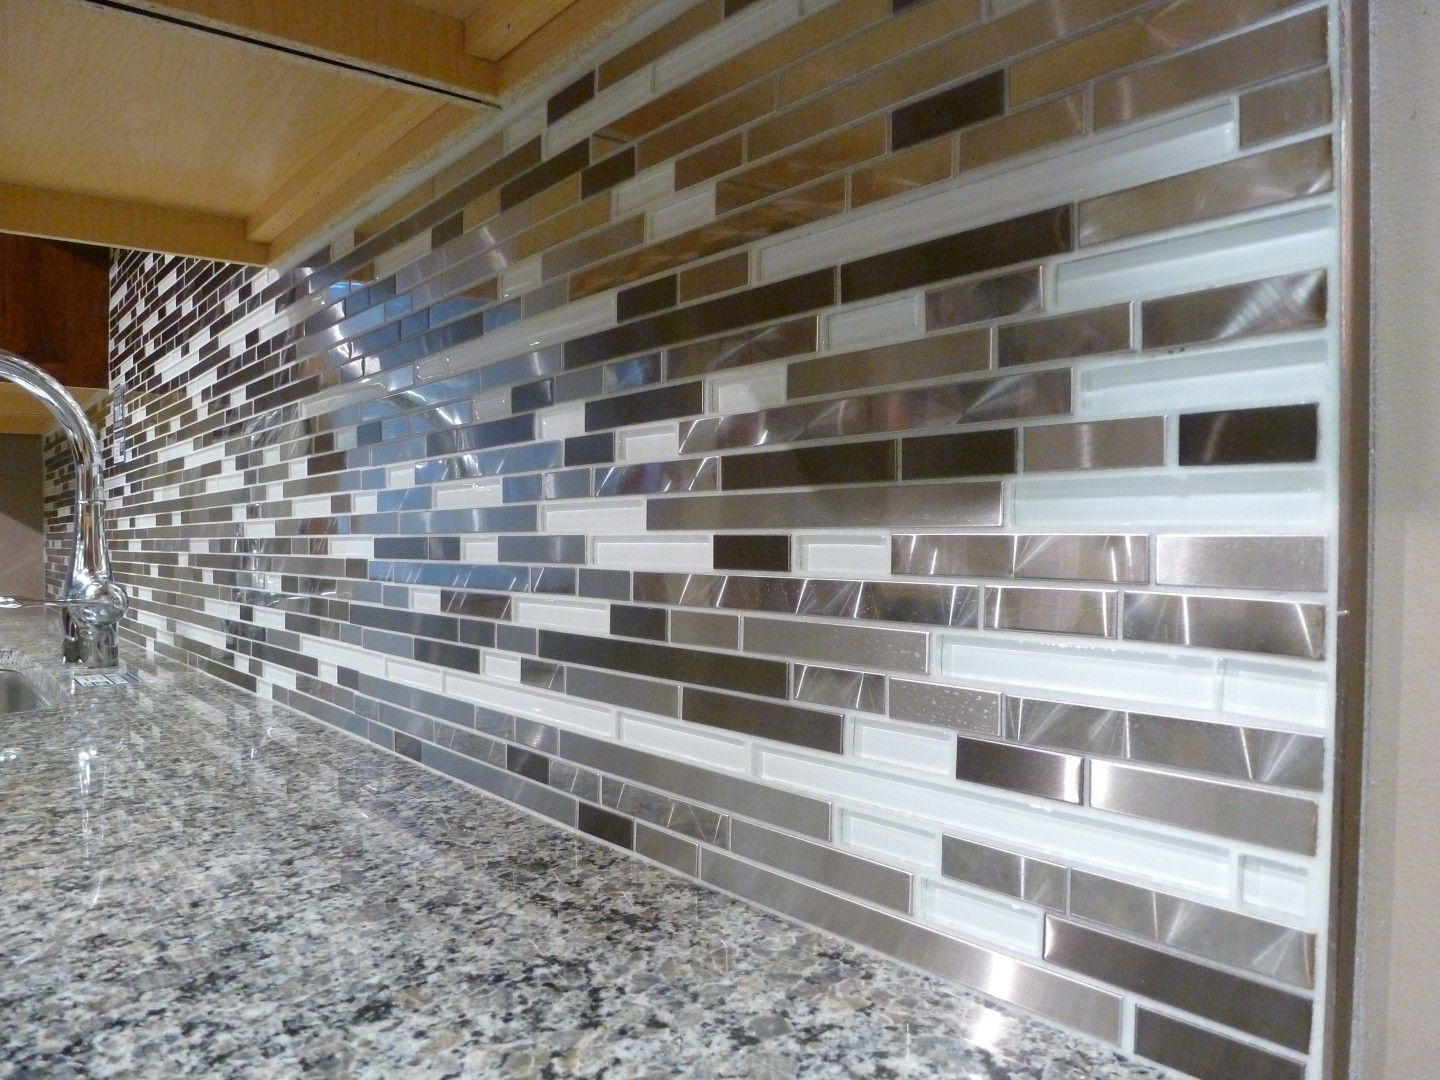 Kitchen Backsplash Panel Metal And White Glass Random Strips Backsplash Tile Mosaic 15 1 2